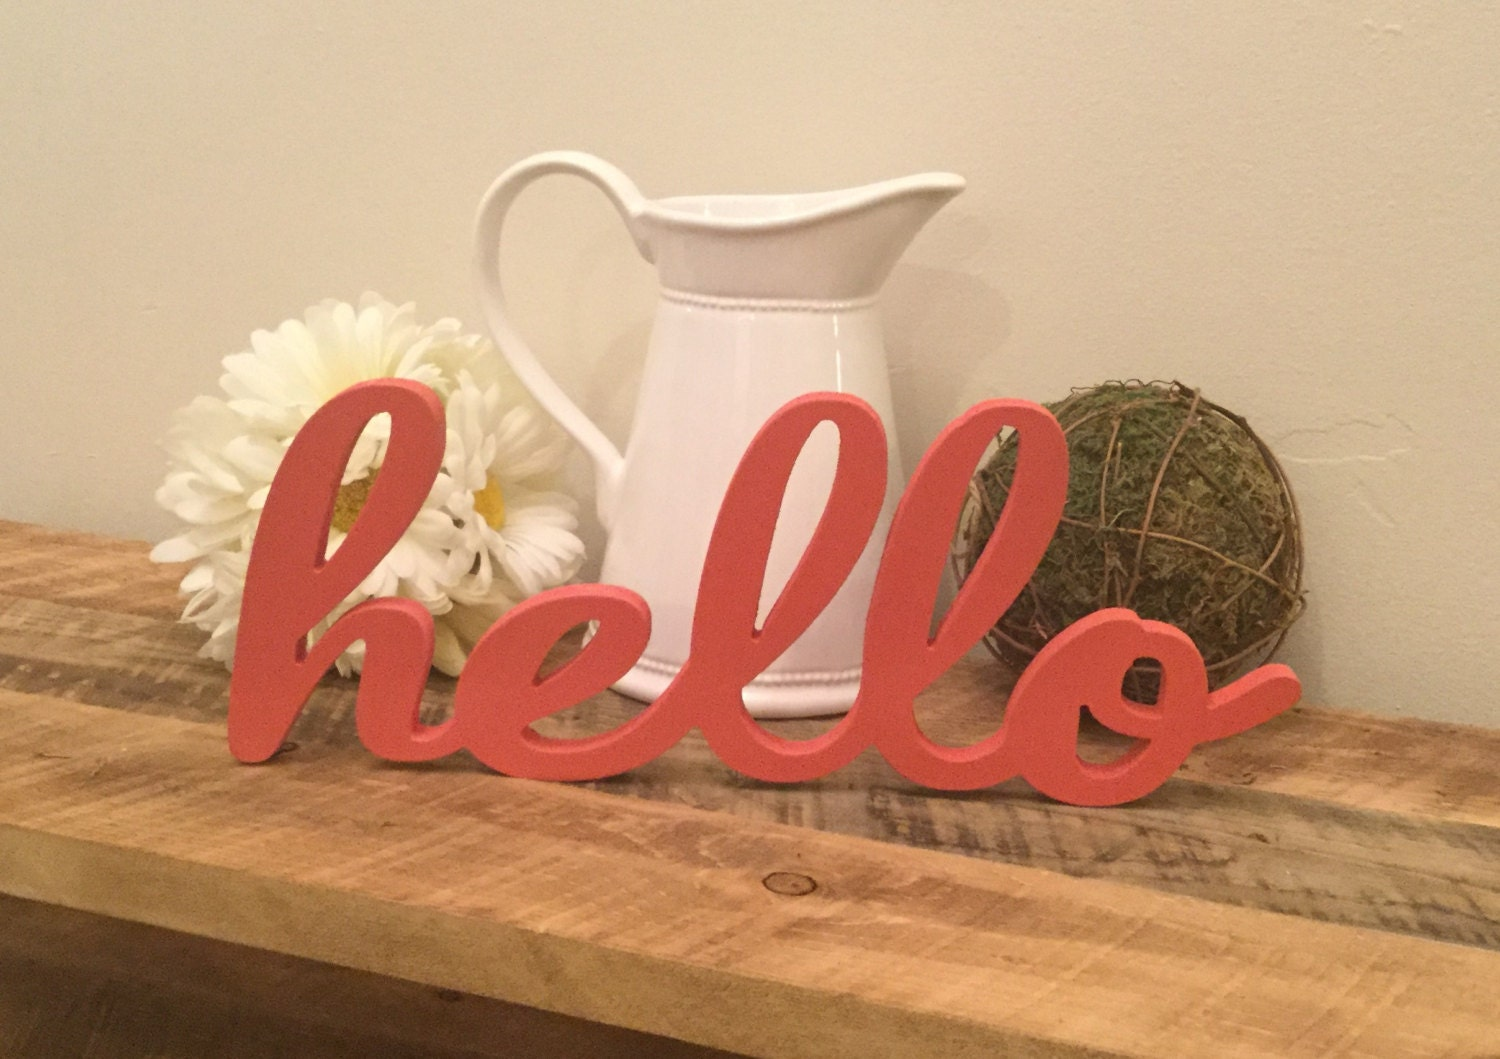 Wooden Words Wall Art : Hello wooden wall art wood letters free standing